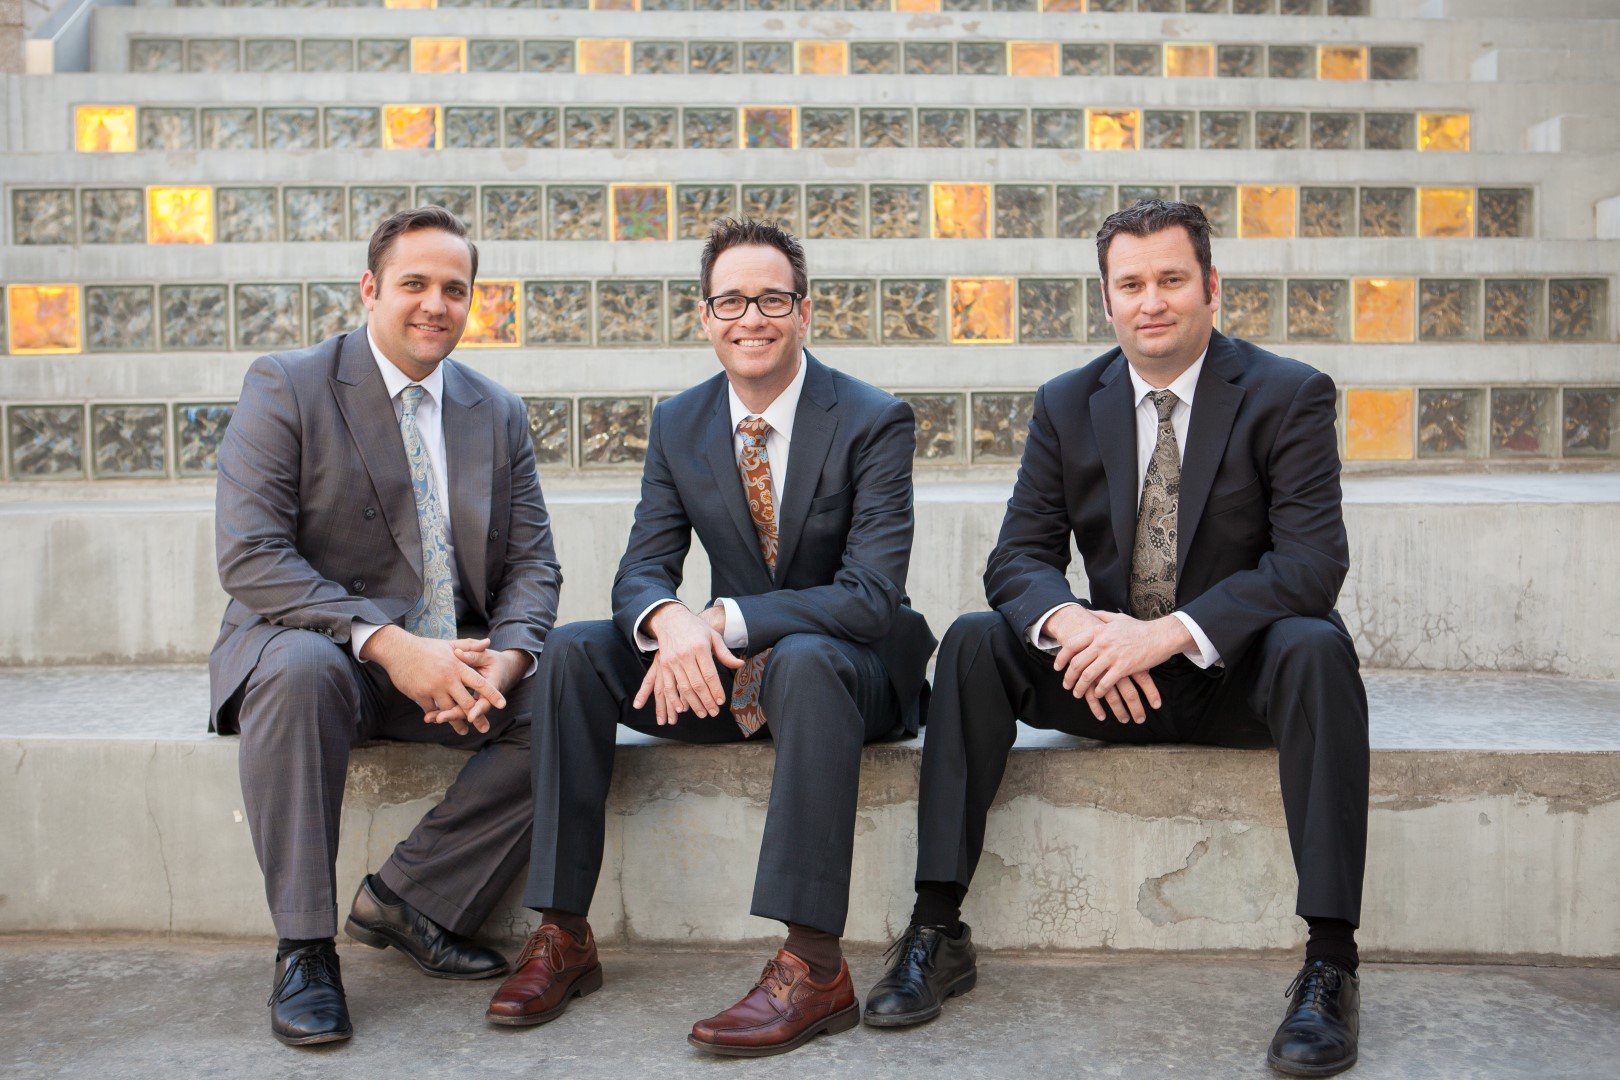 Dana Hogle, Nathan Hogle & Chris Stapley of Hogle Family Law in Glendale, Arizona.